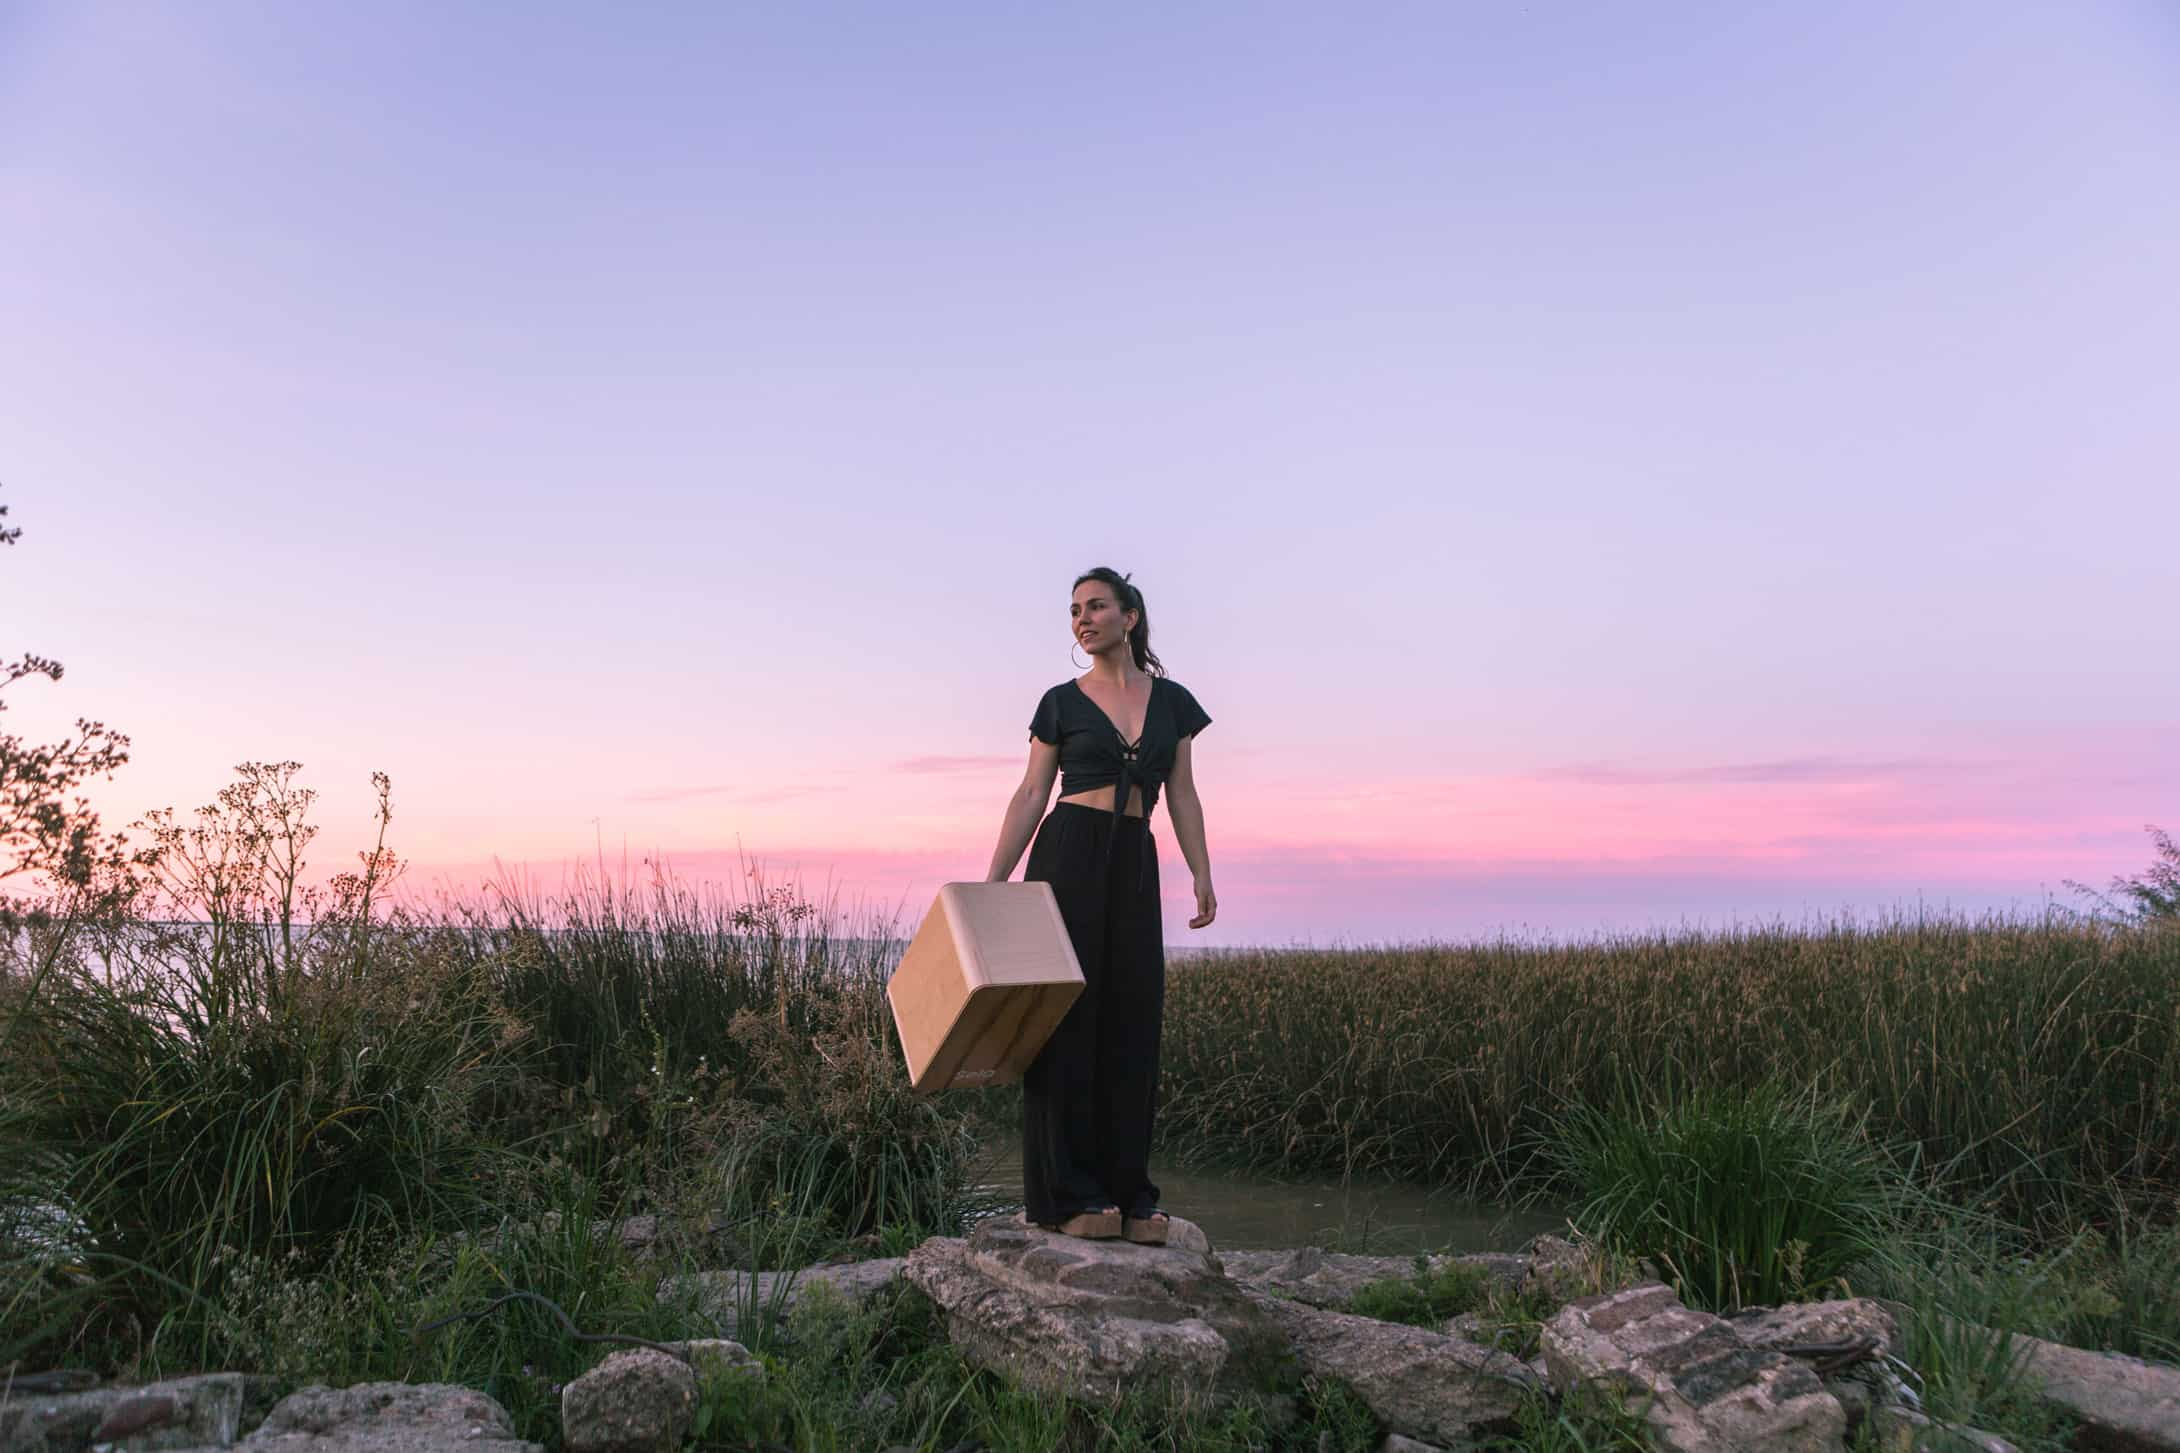 A girl holding her Cajon drum box during sunset.